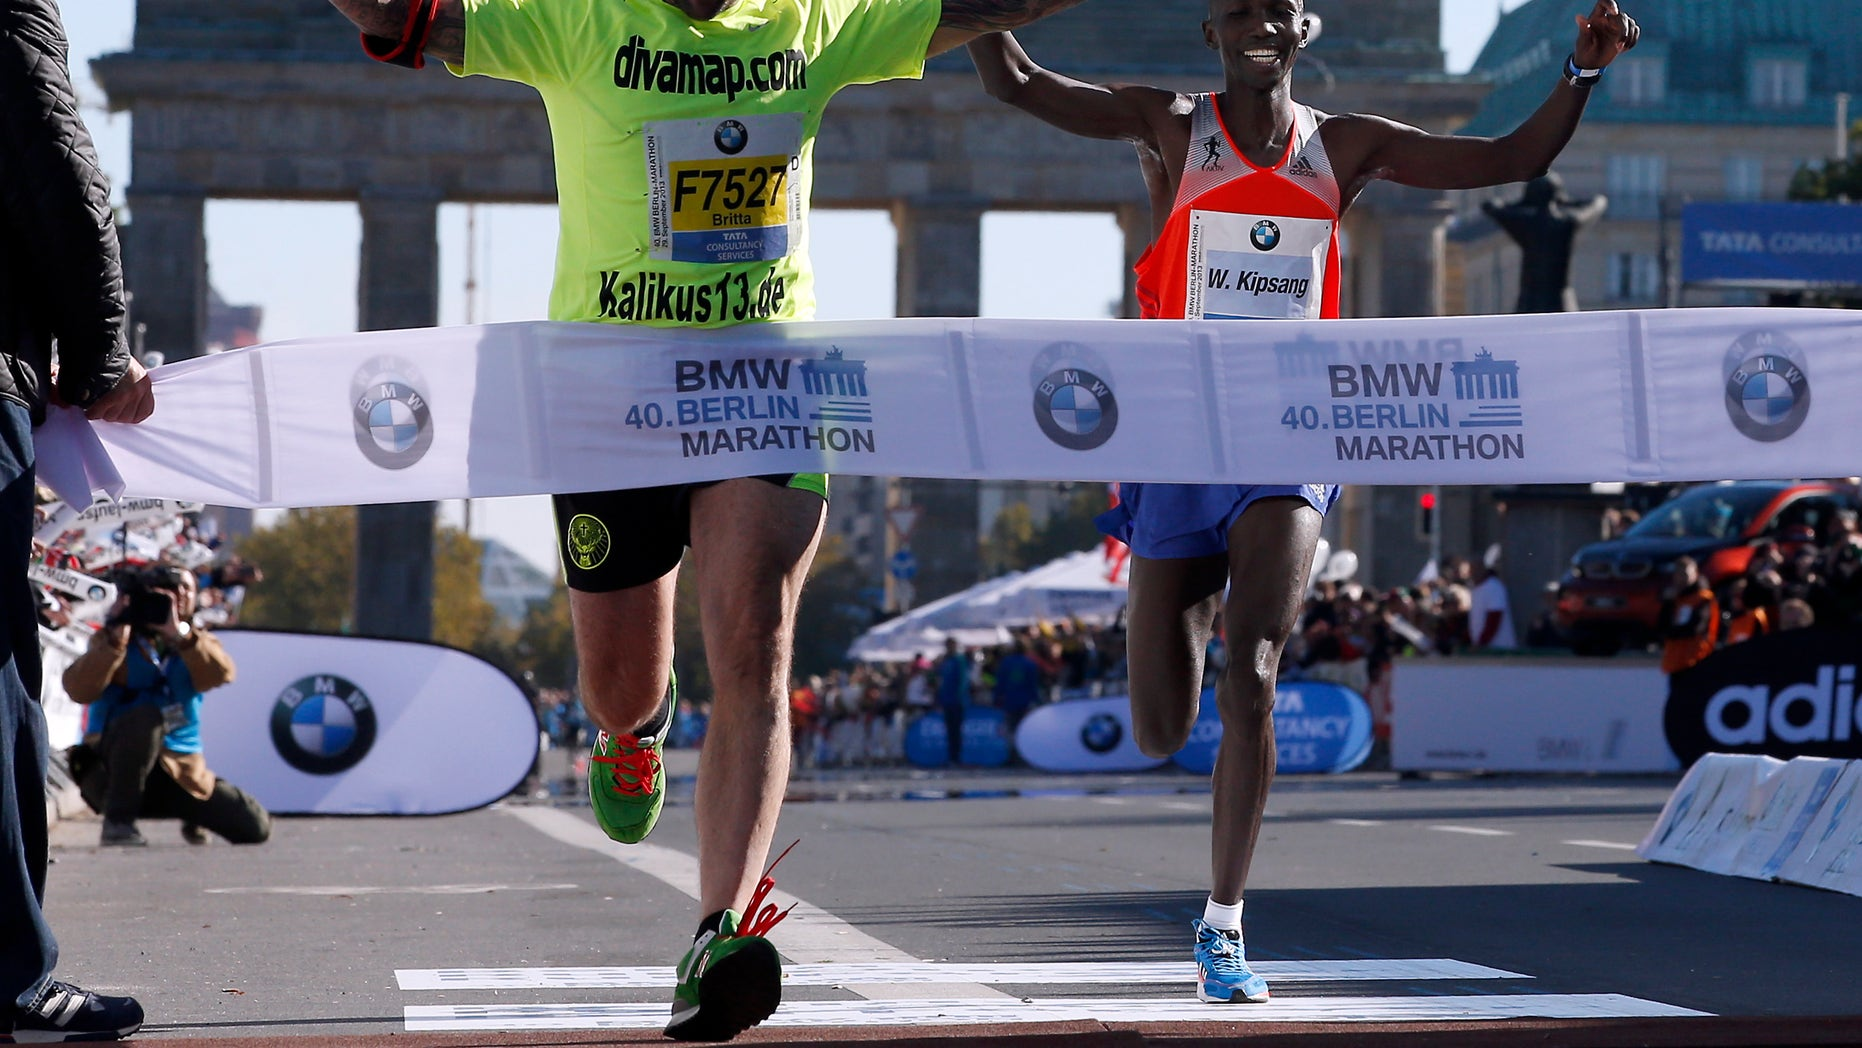 Sept. 29, 2013 - Winner Wilson Kipsang, right, from Kenya smiles as an unidentified man crosses the finish line during the 40th Berlin Marathon in Berlin, Germany. Kipsang set a new world record of 2h 3min 23sec.